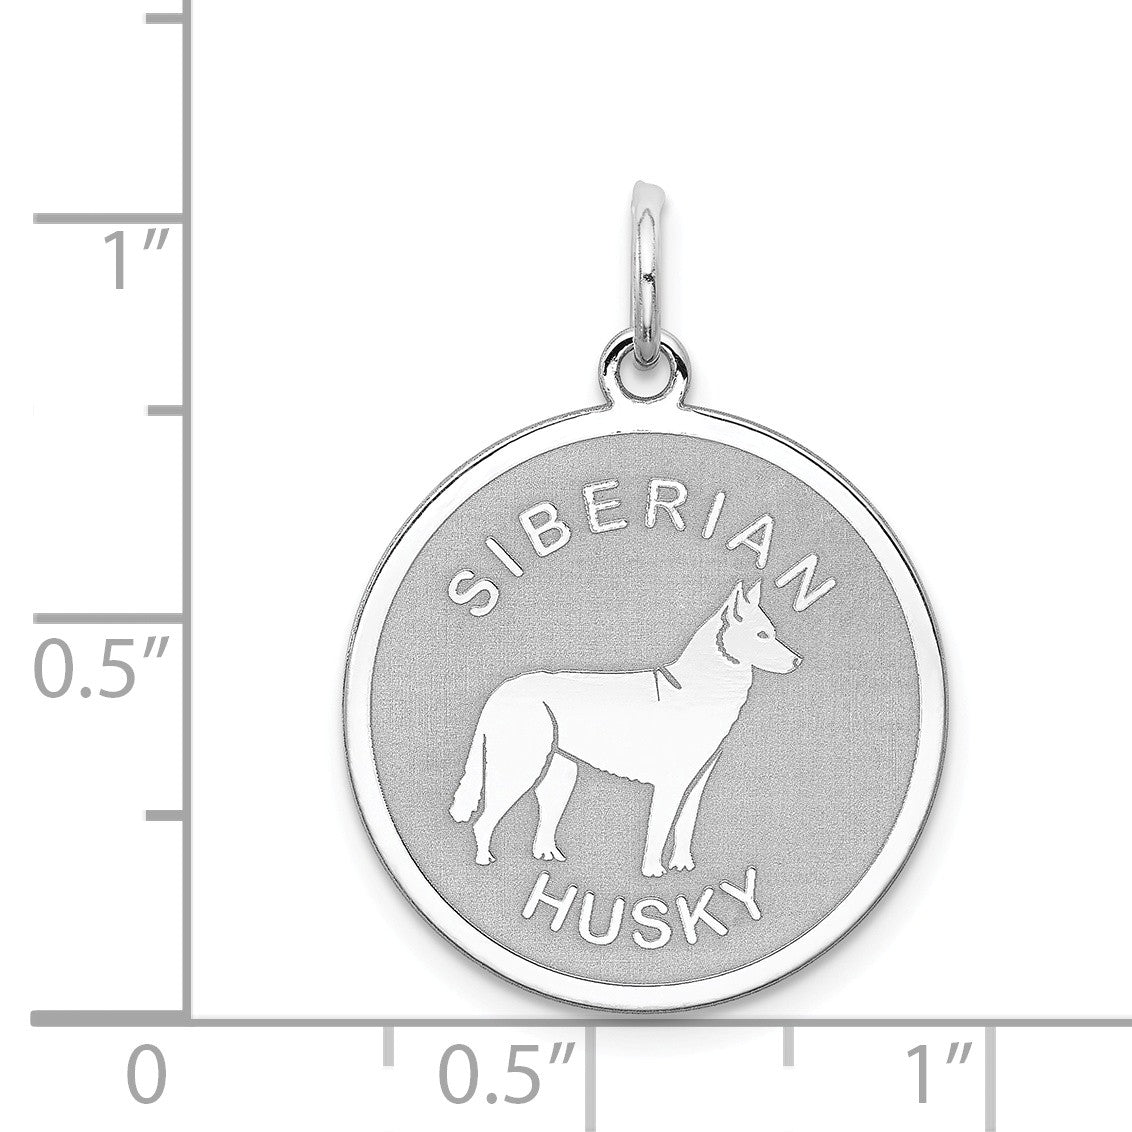 Alternate view of the Sterling Silver Laser Etched Siberian Husky Dog Pendant, 19mm by The Black Bow Jewelry Co.